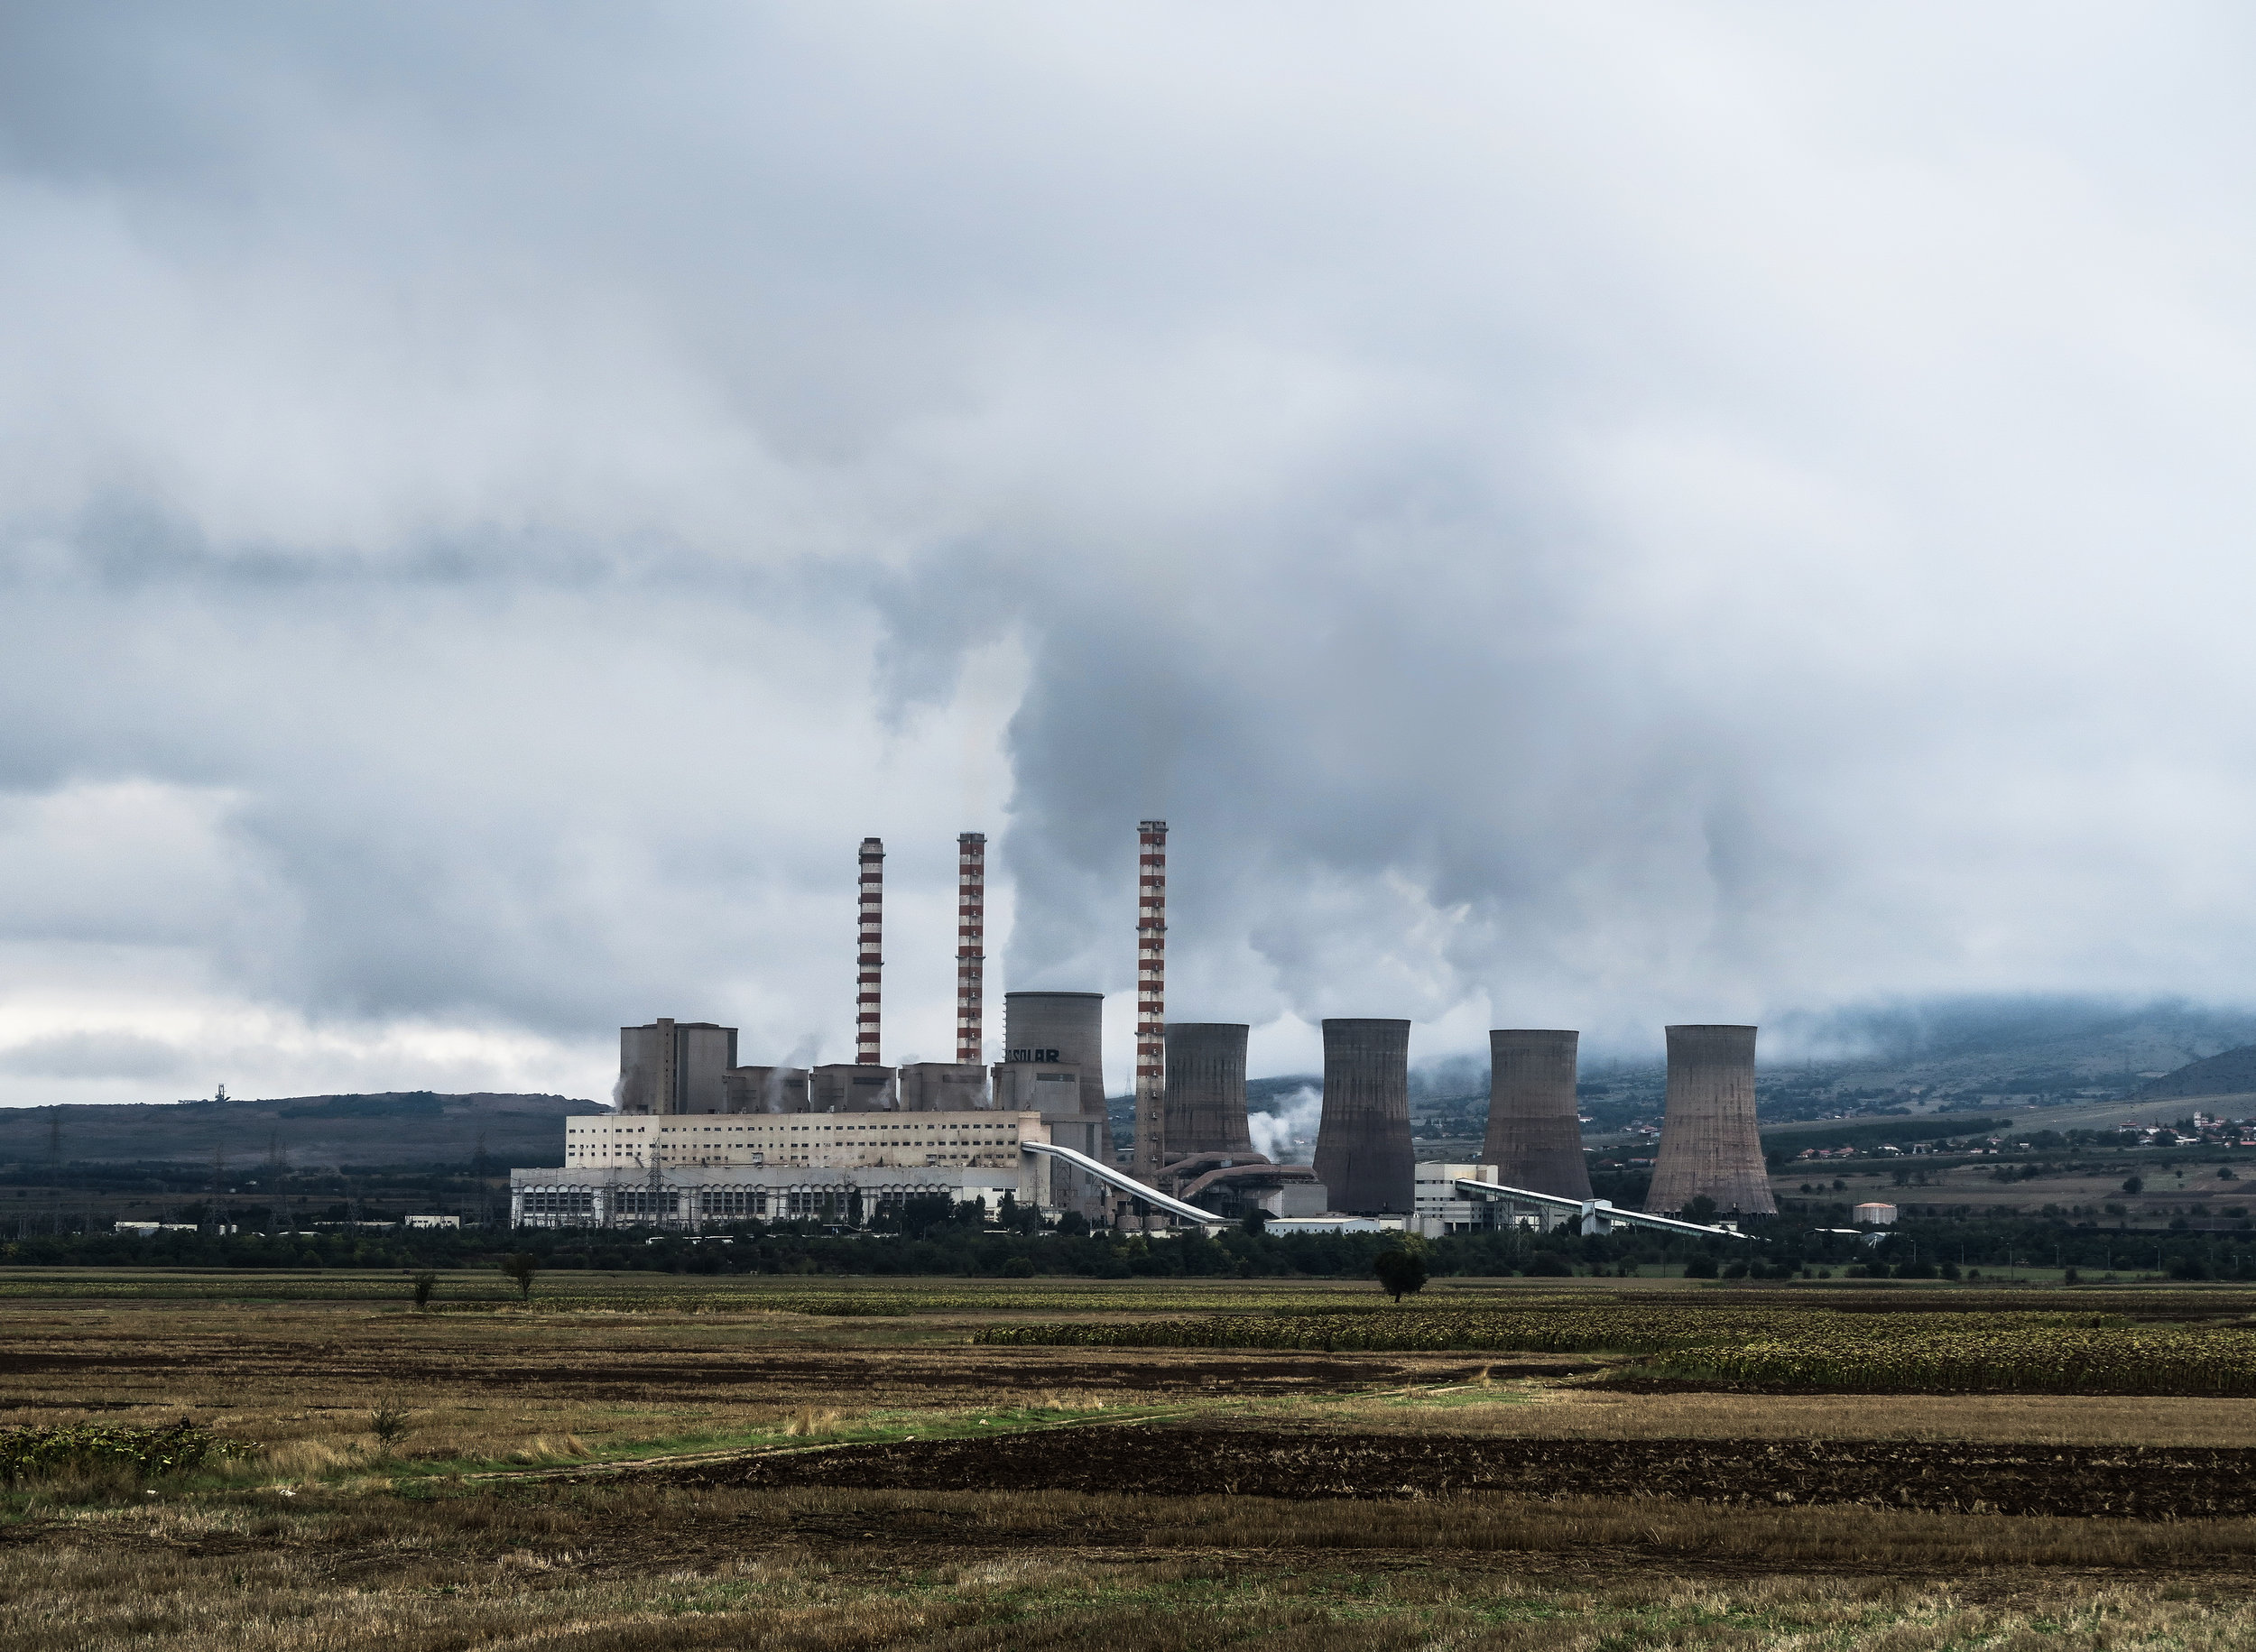 Create a Better Present - Utility Companies are a main offender when it comes to the hazardous air quality we have seen getting increasingly worse over the years. By not funding this pollution you are doing your part to combat increasingly bad air quality and creating a better future for your kids.